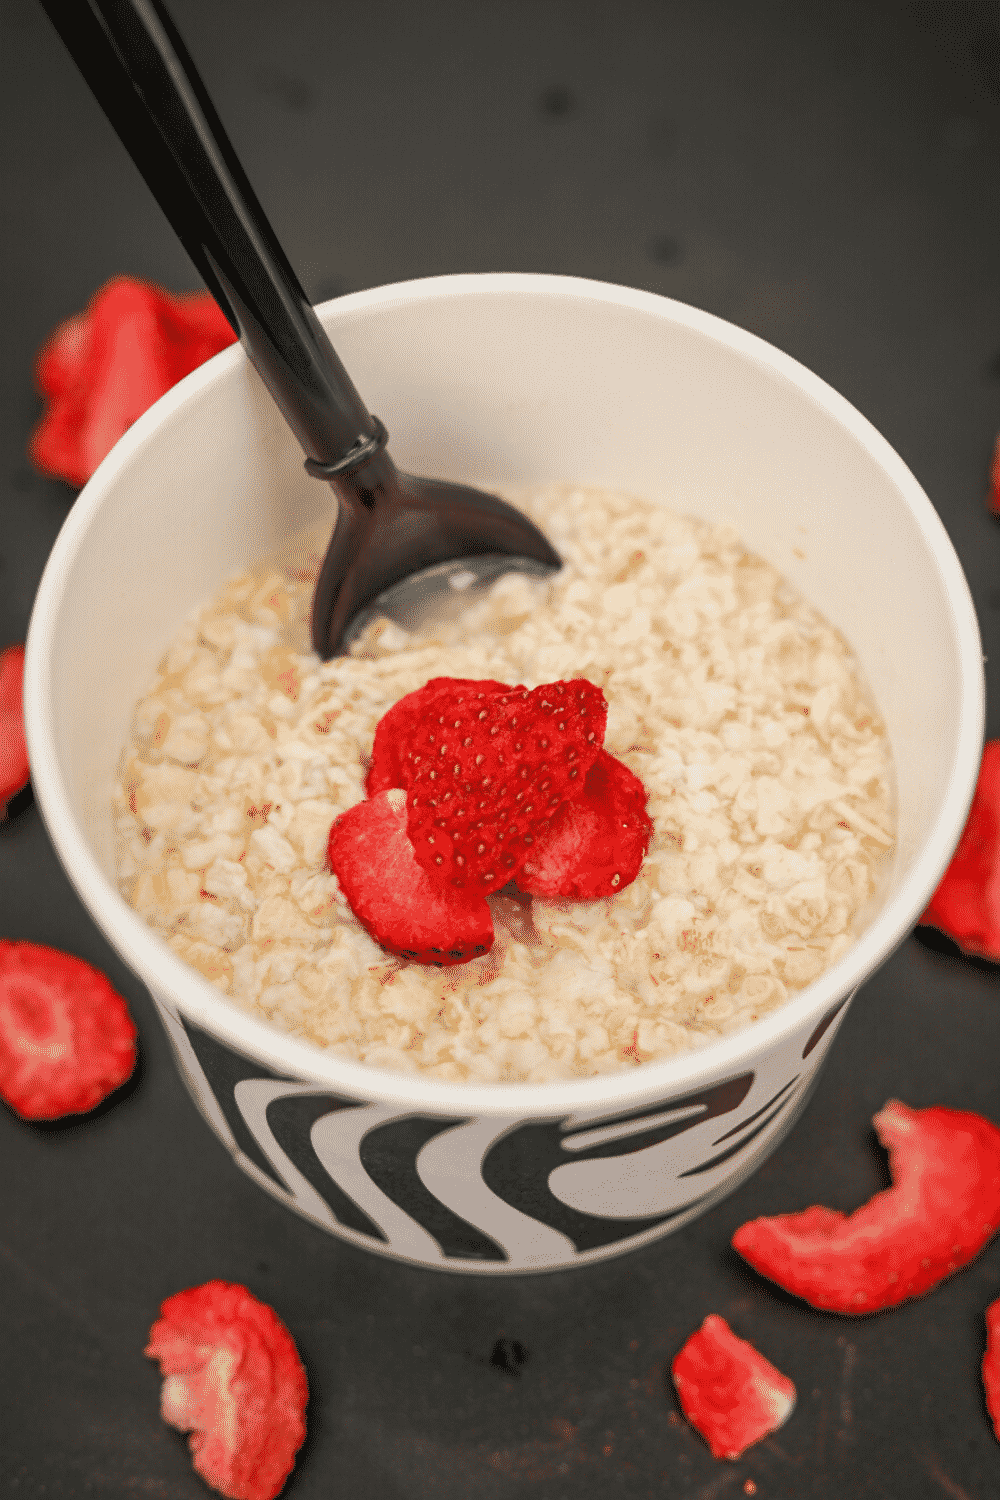 A cup of Starbucks oatmeal with a few freeze dried strawberries on top.